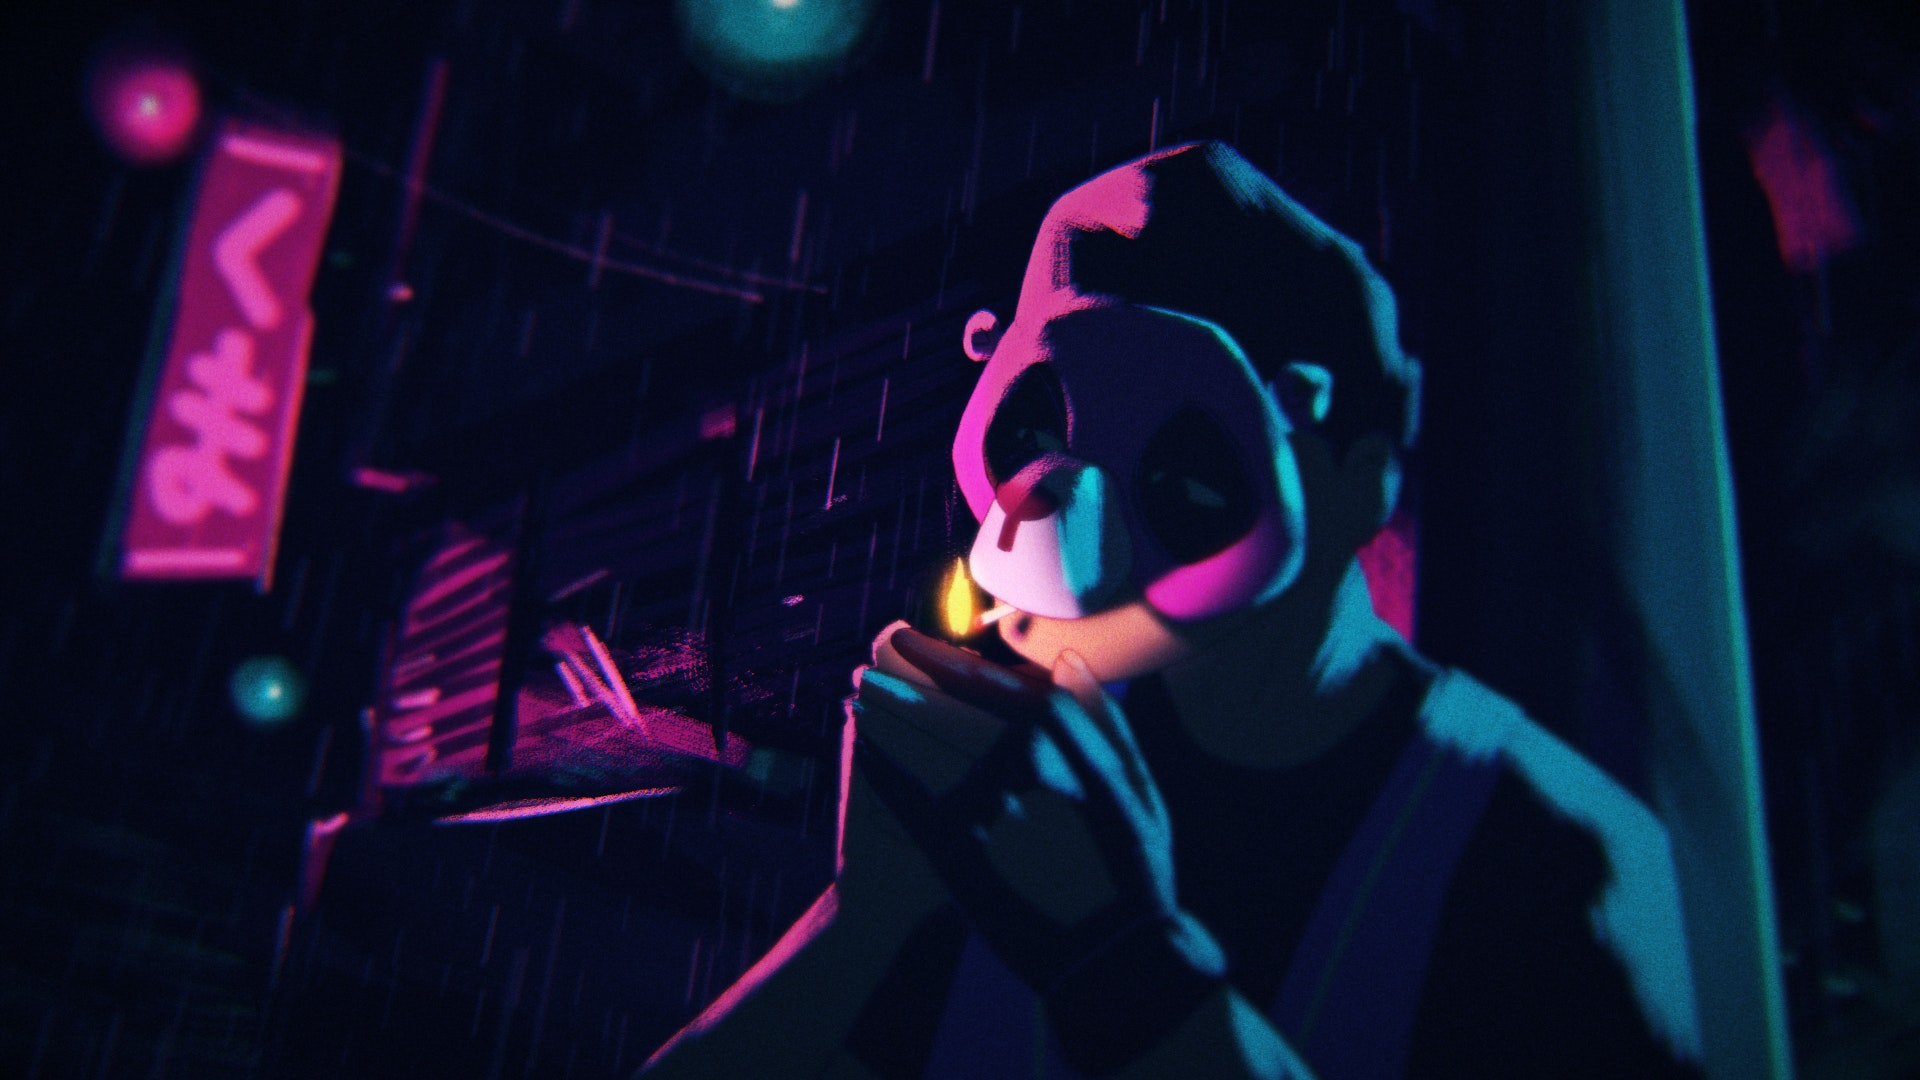 Illustration of a character with a mask smoking a cigarette